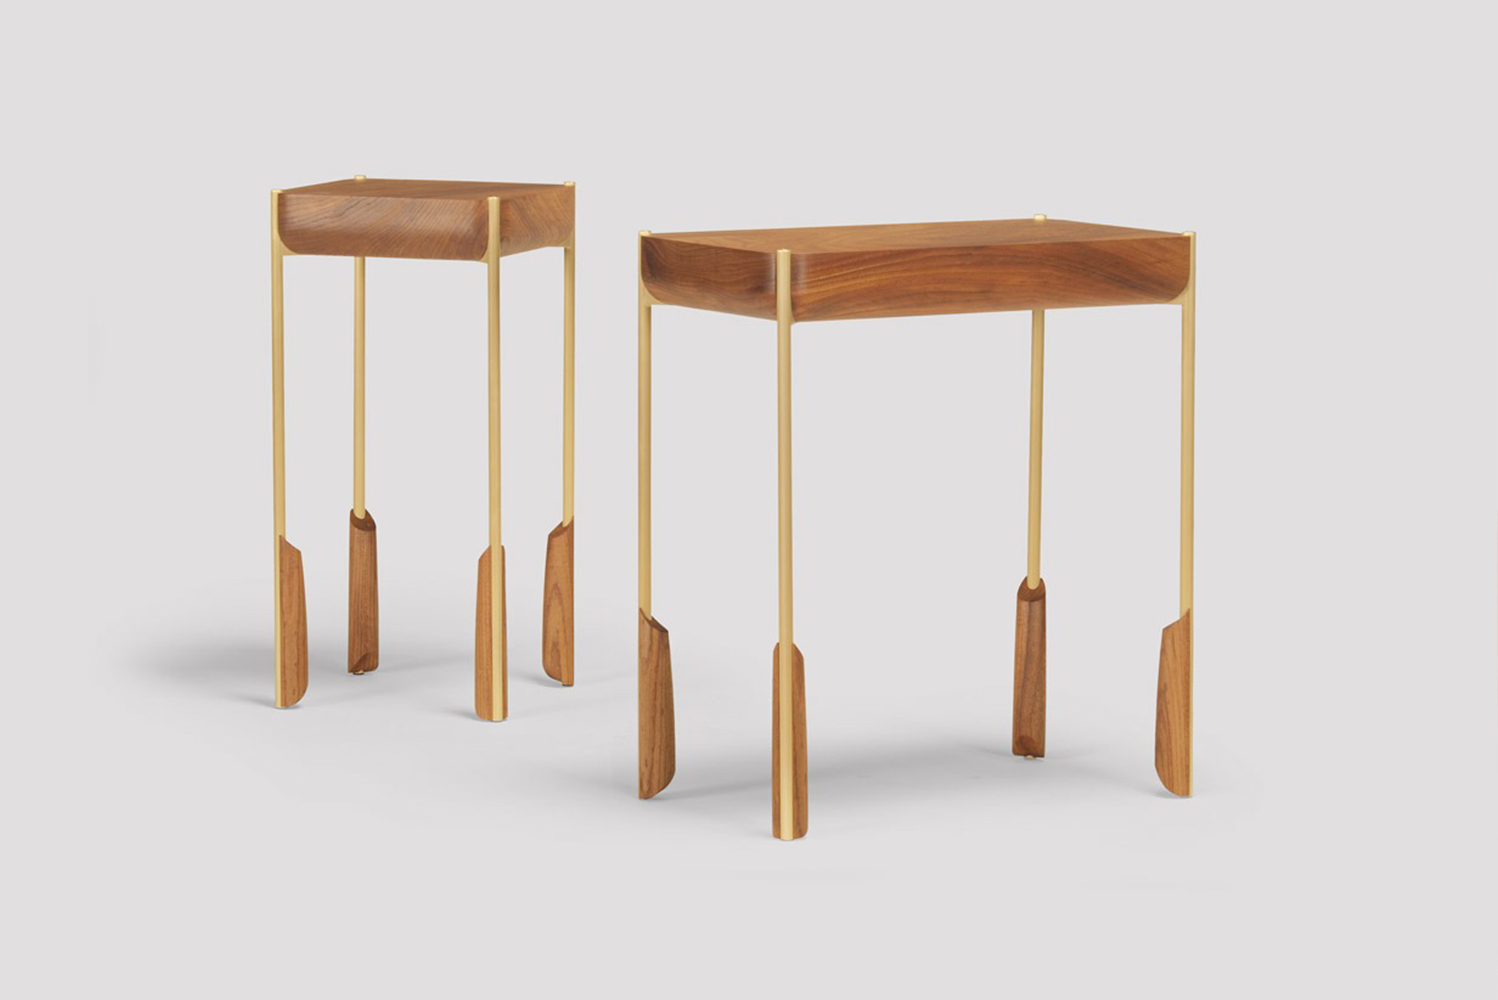 Introducing the Altai side tables from Skram Furniture.